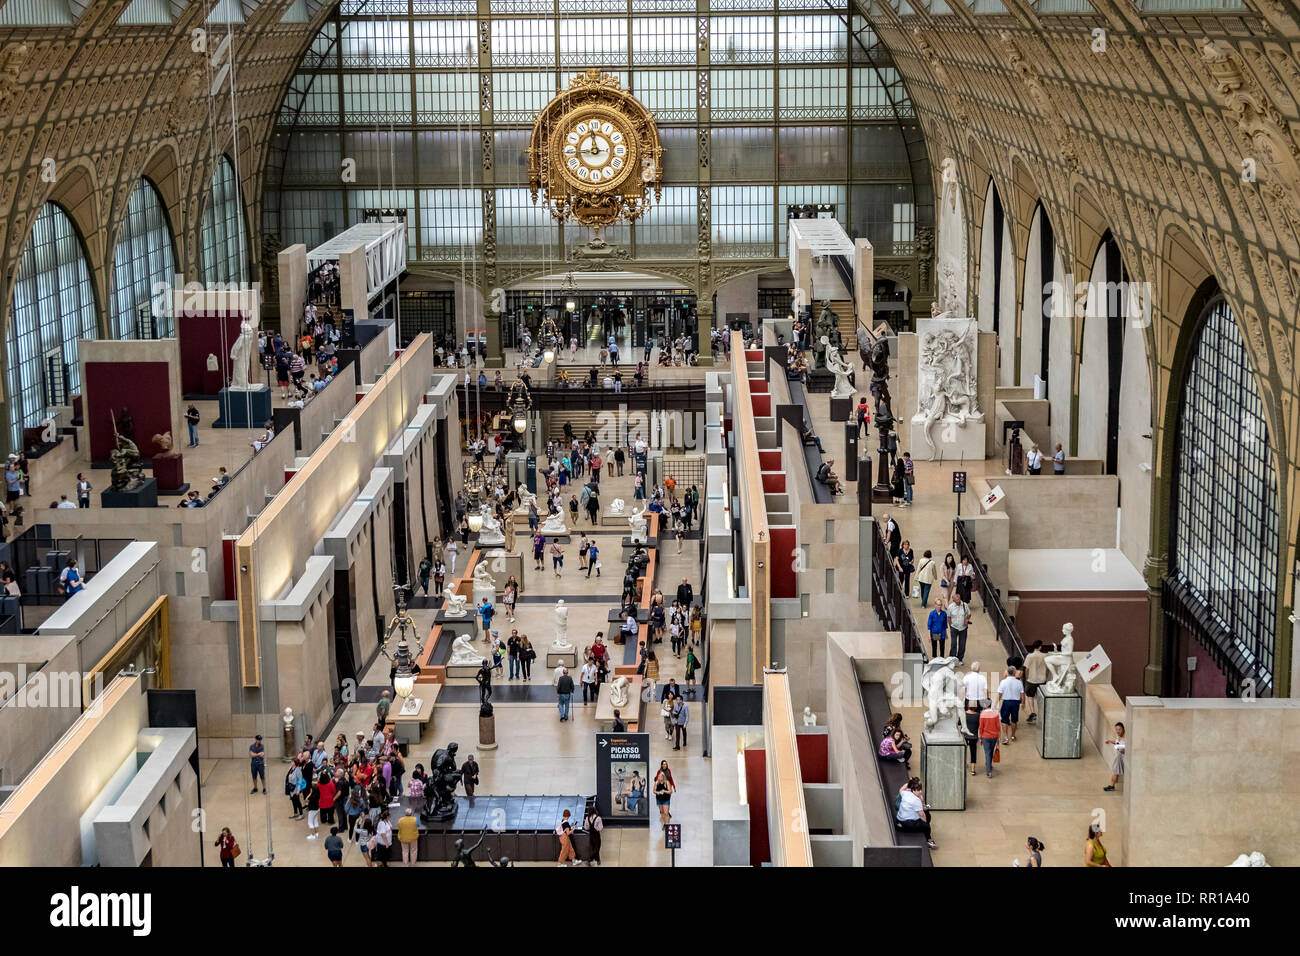 Interior of Musée d'Orsay ,the museum building was originally a railway station, Gare d'Orsay, and now houses a world class collection of art ,Paris - Stock Image